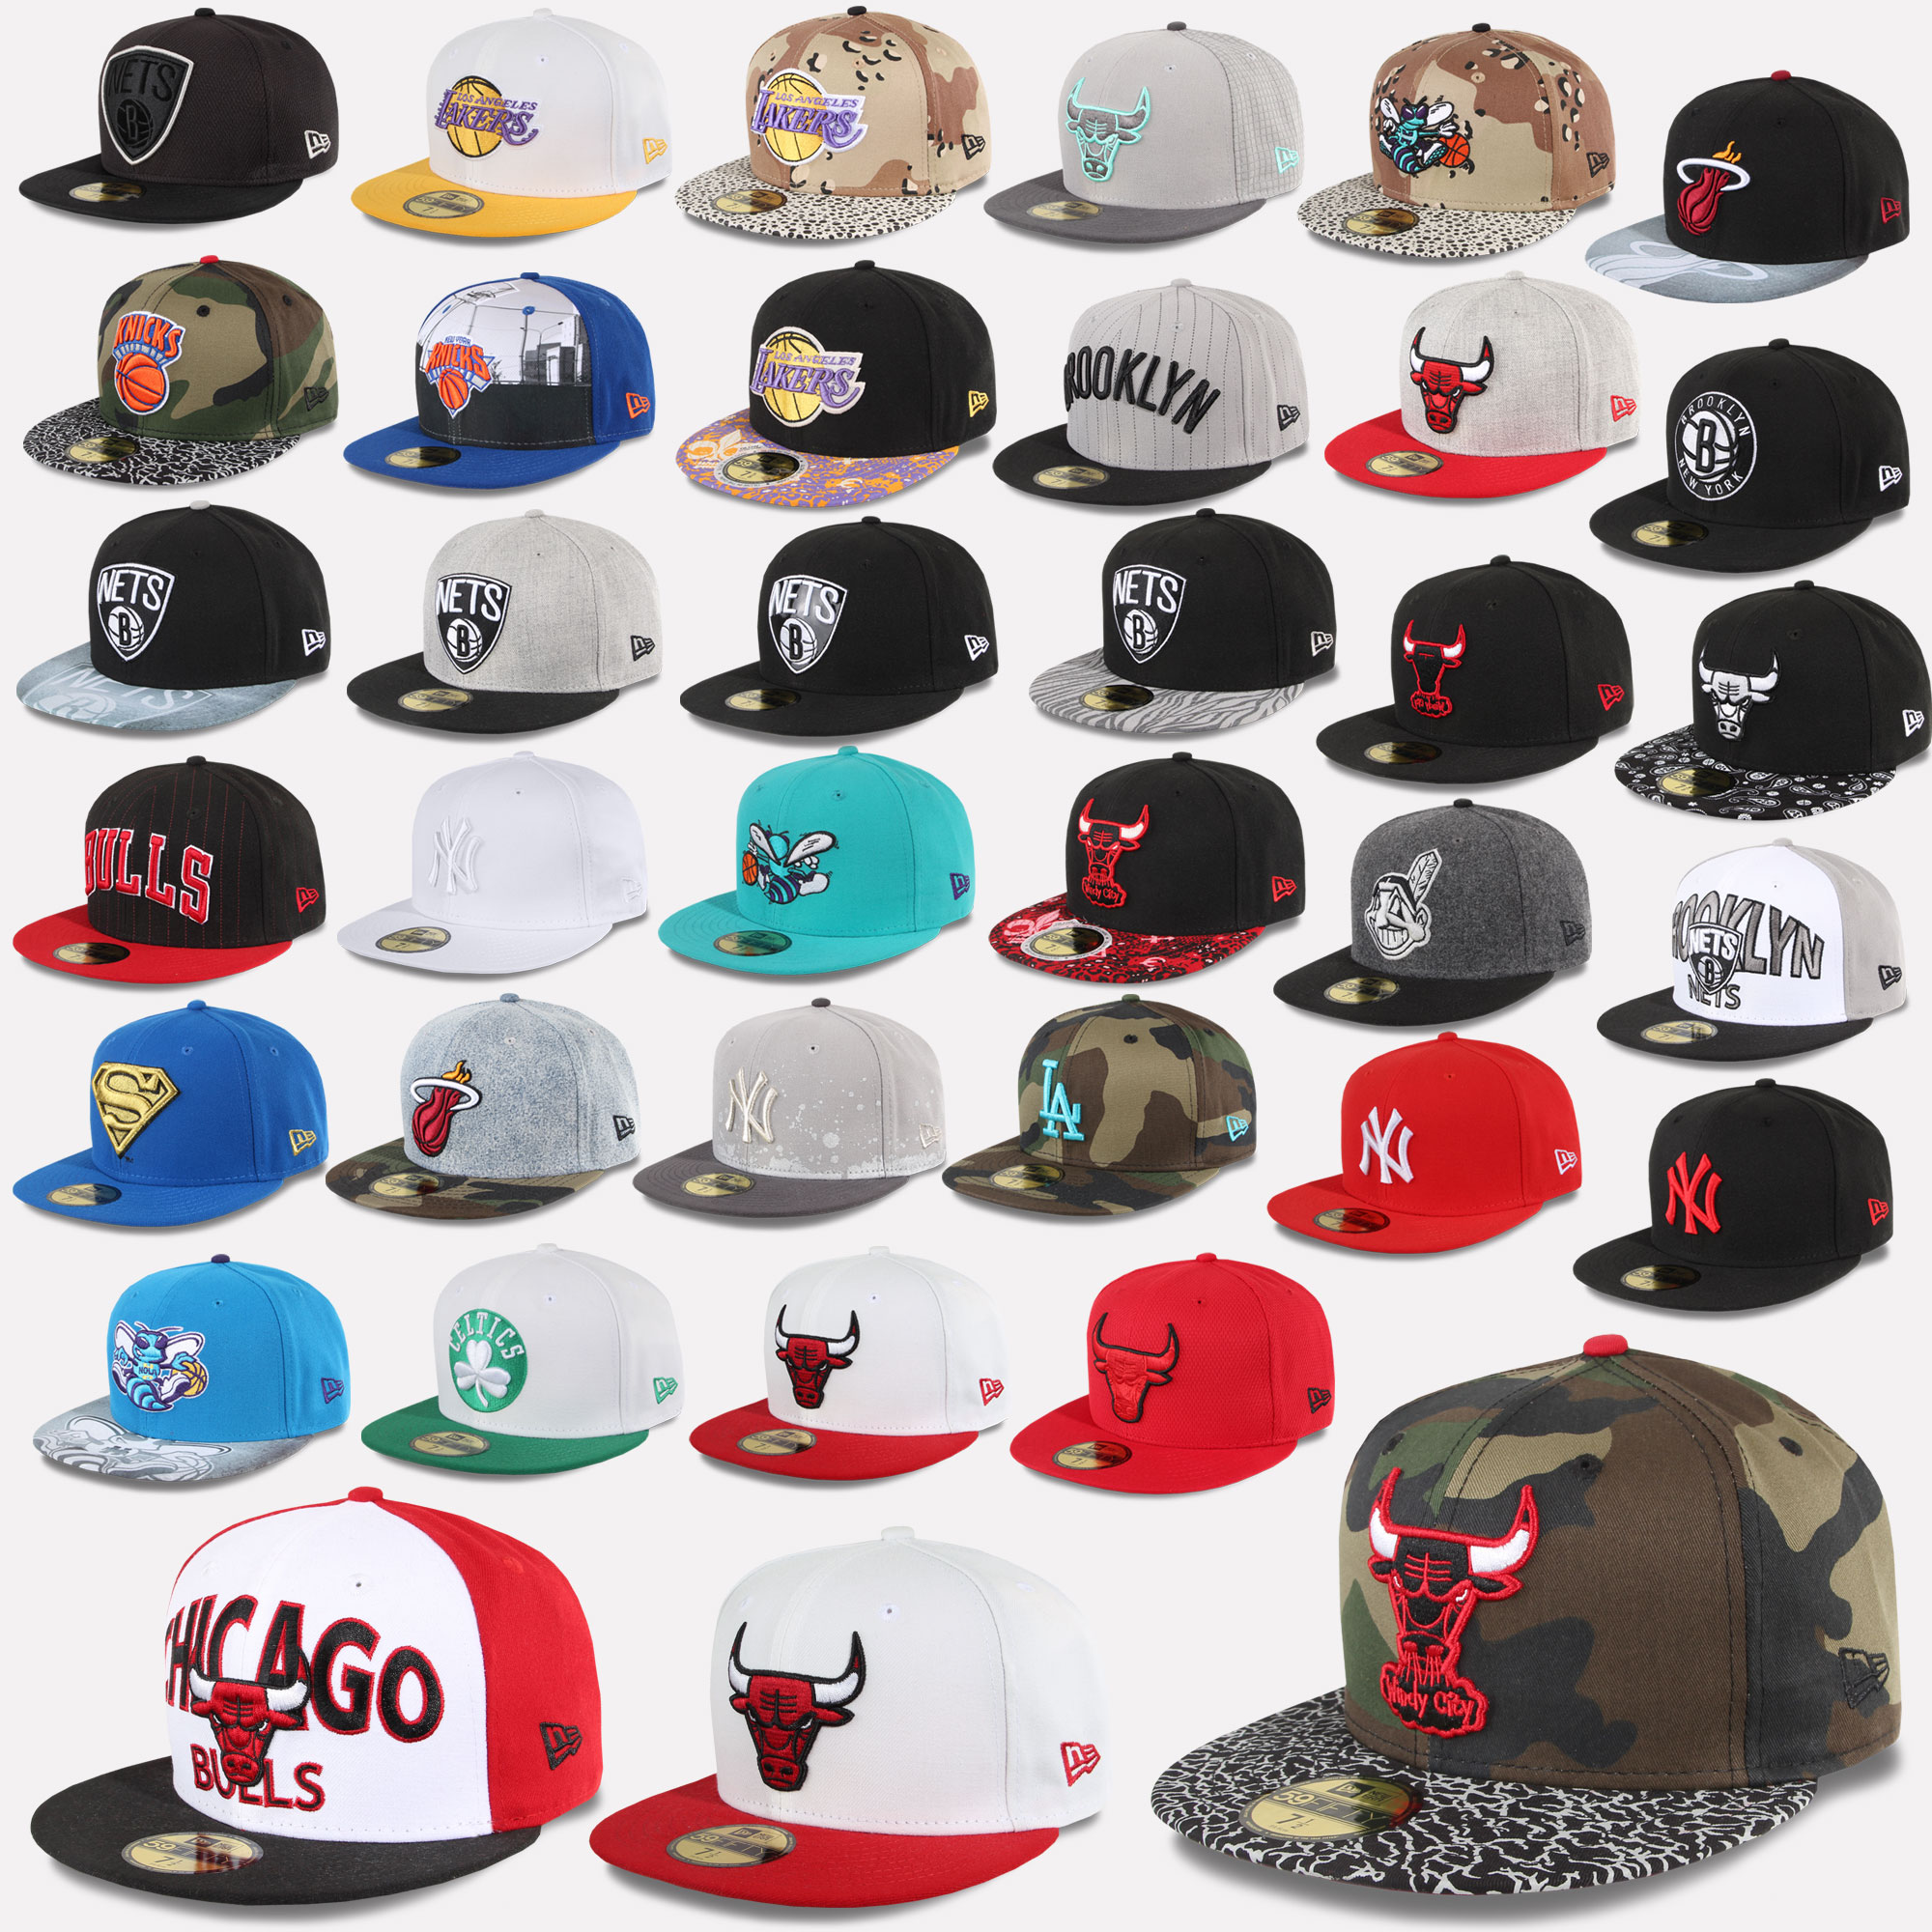 Details zu New Era Cap 59Fifty Fitted New York Yankees Chicago Bulls  Superman Hornets Etc 0a5f17494aa